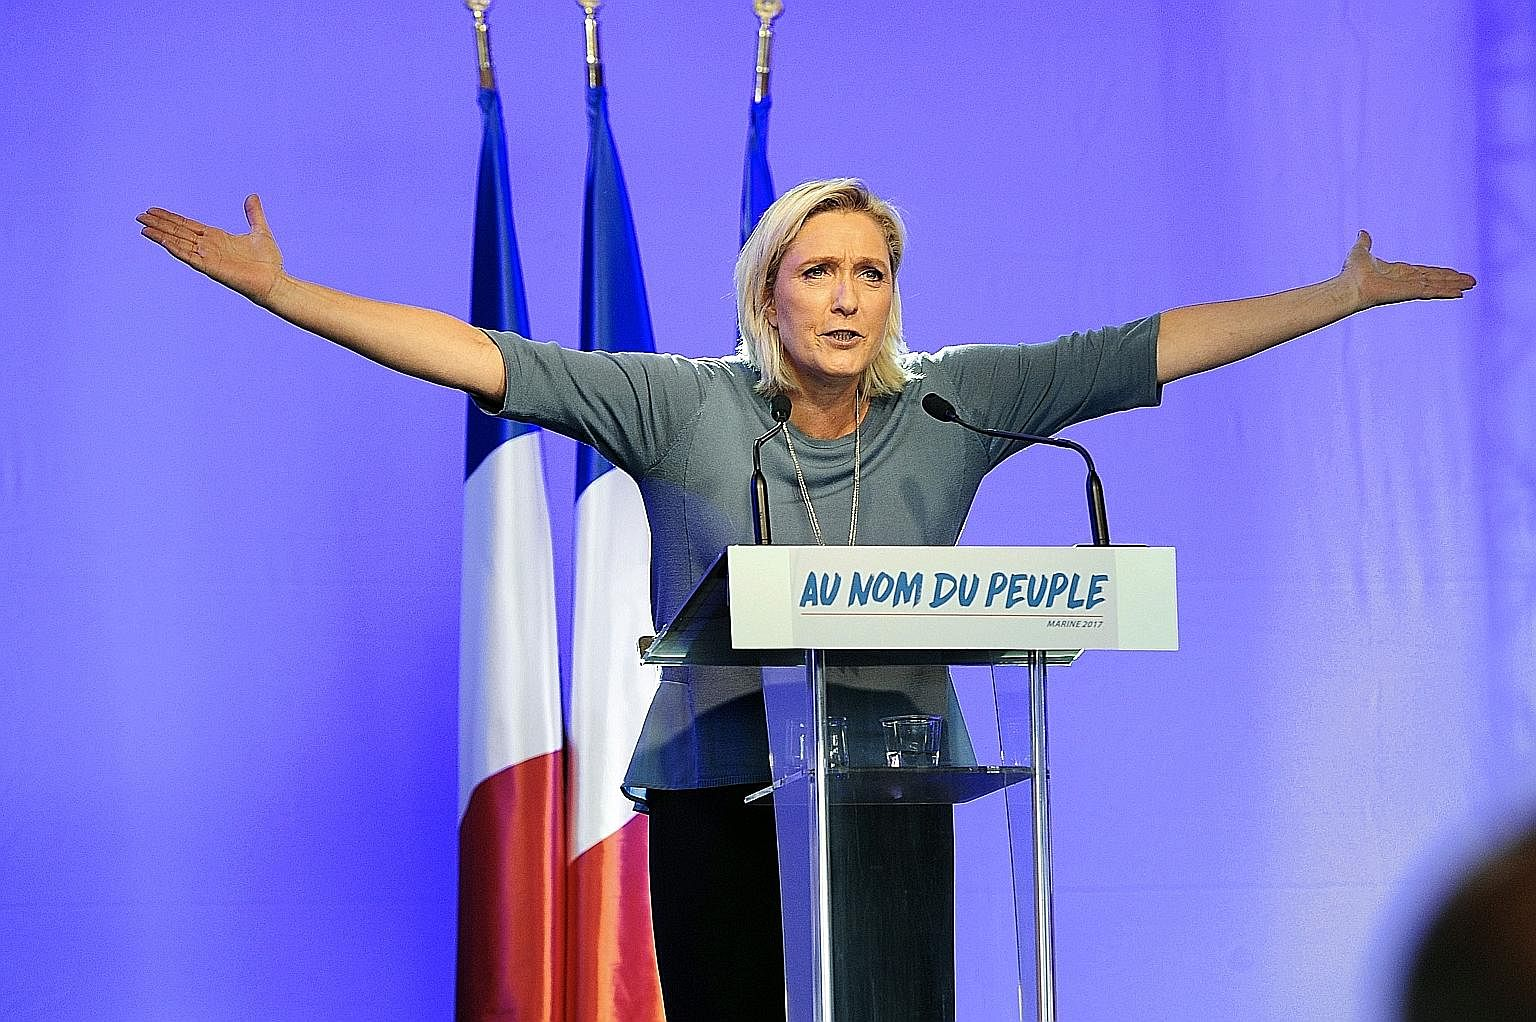 In contrast, Ms Le Pen is a twice-divorced mother of three. As a child, she survived a bomb attack and later, her mother's abandonment. She went on to transform the National Front, a party her father founded, from a fringe movement, which acted as a